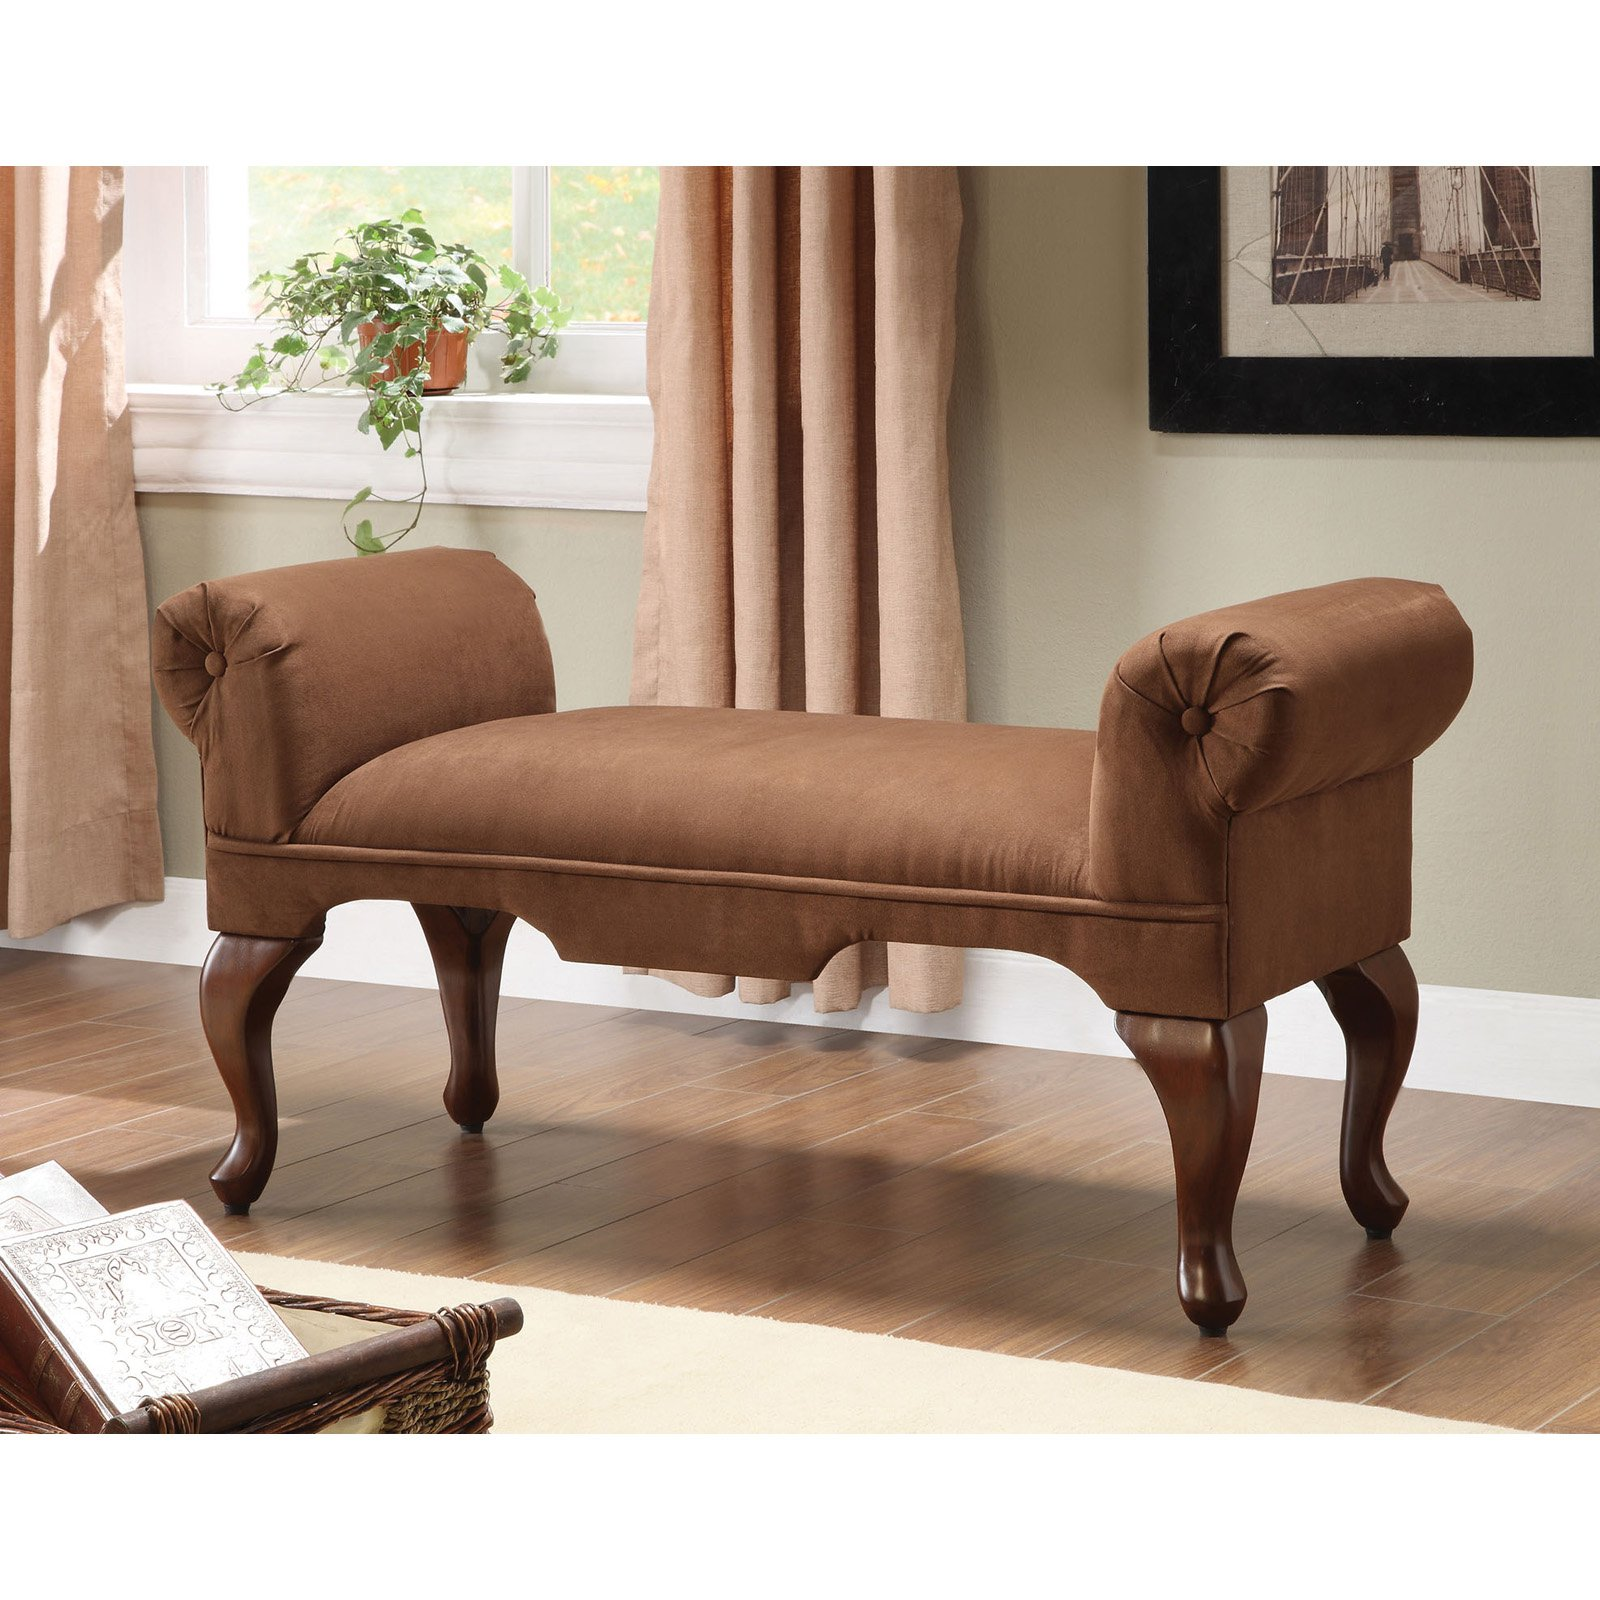 ACME Alfie Bench with Rolled Arm, Chocolate Microfiber by Acme Furniture